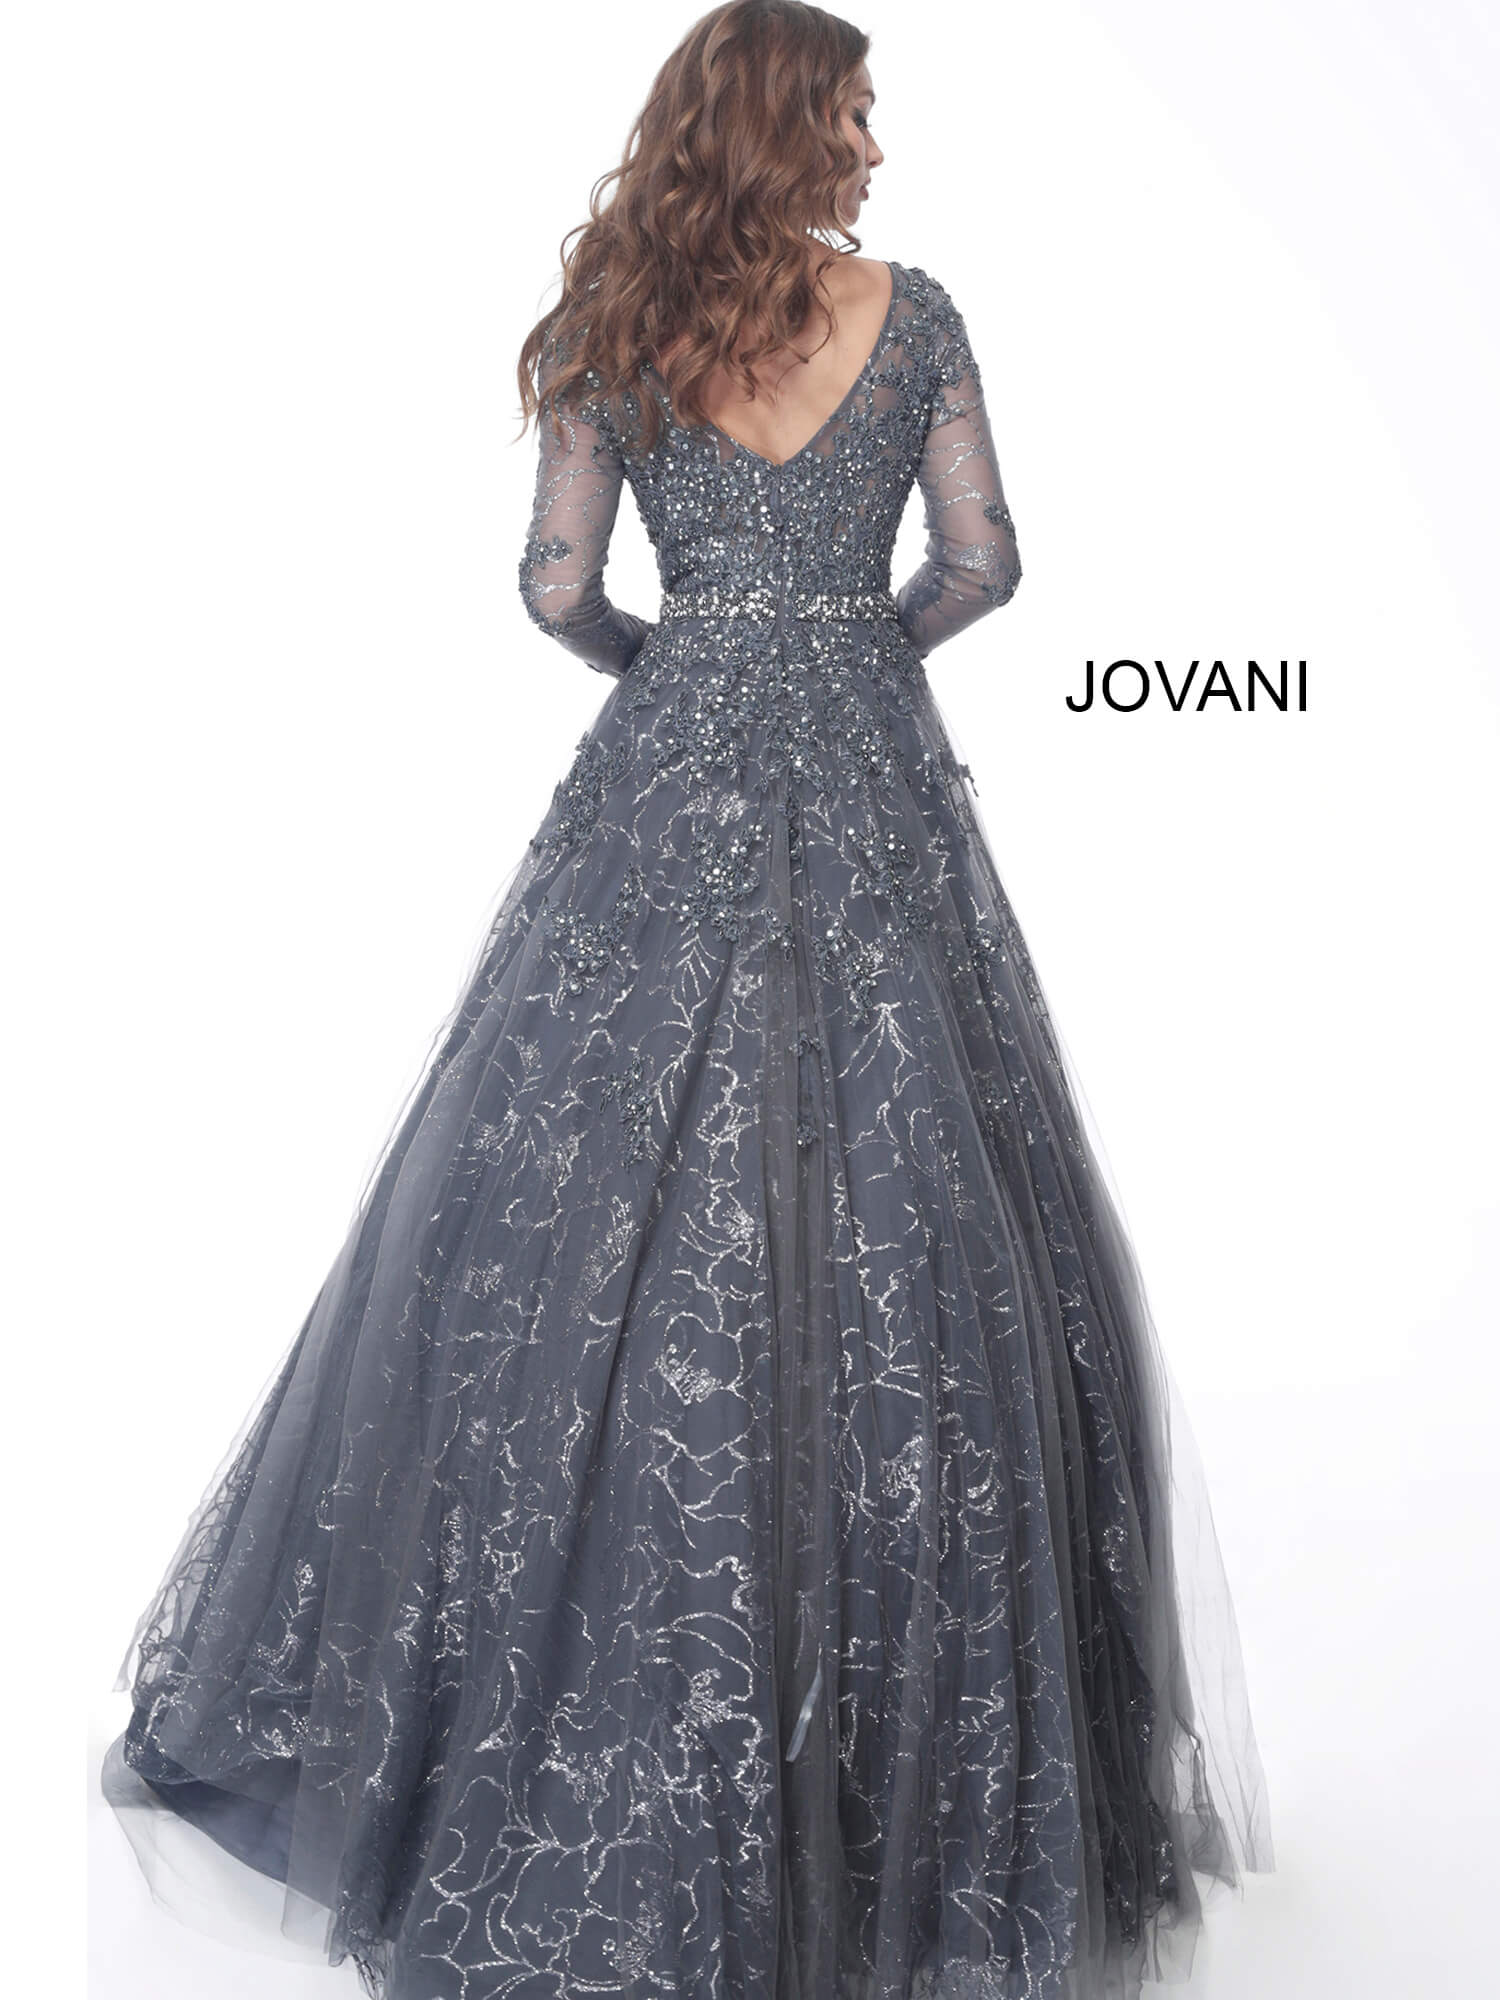 Jovani gunmetal beaded long sleeve evening gown 51838